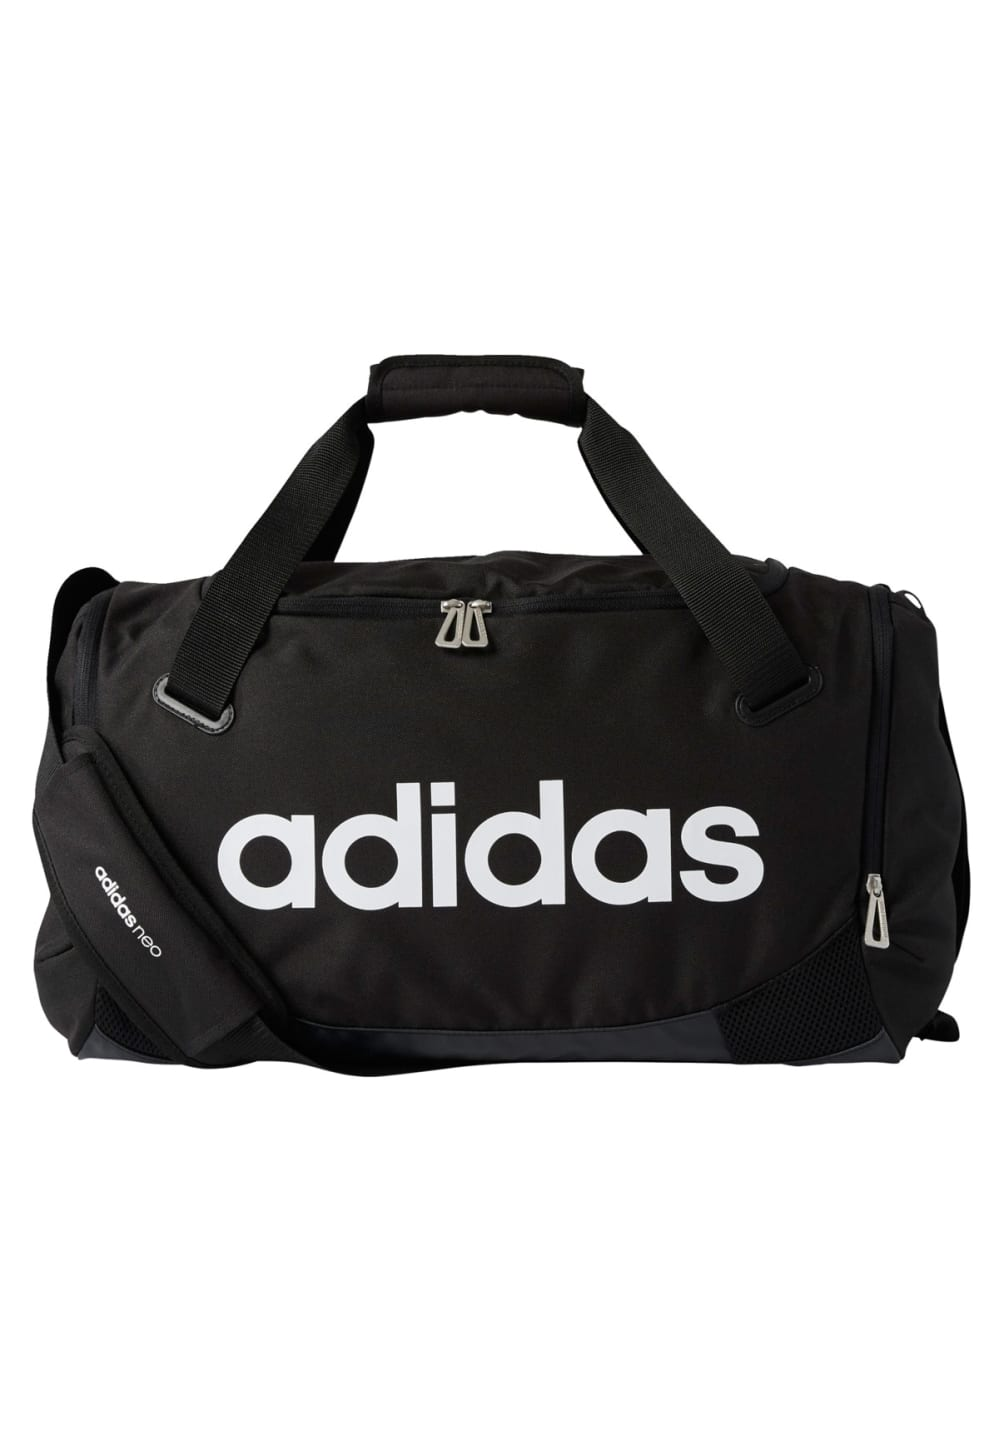 Homme Noir Adidas Bag Gym Daily Sport Neo Sacs Pour bYf6y7gv